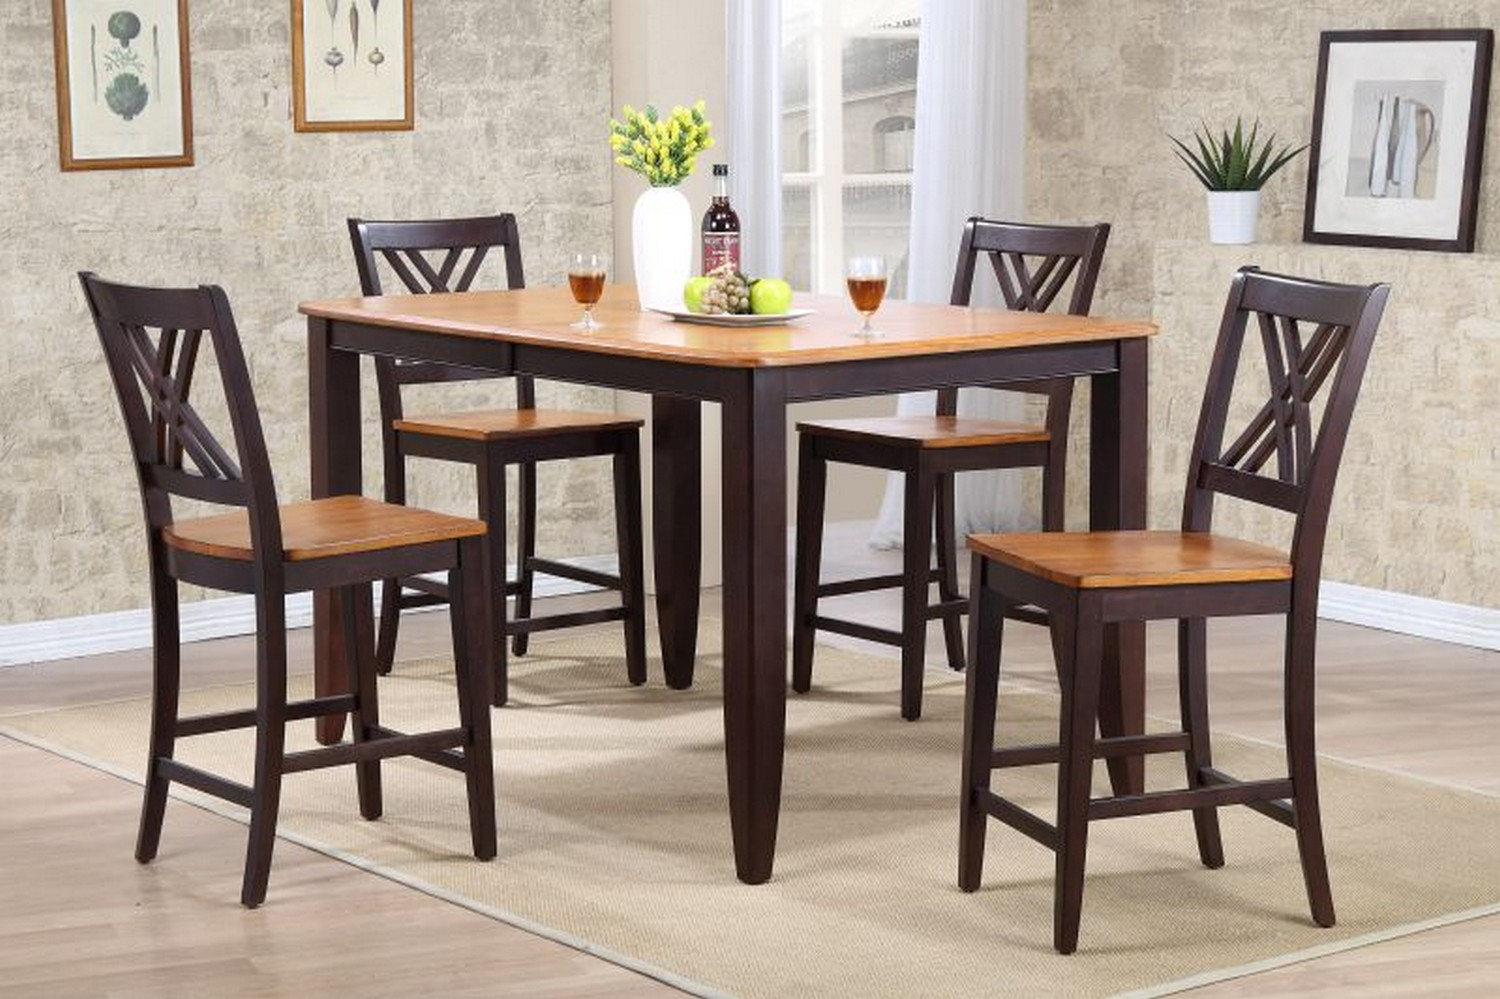 Iconic Furniture RT67 Whiskey/Mocha Double X- Back Counter Height Dining Set